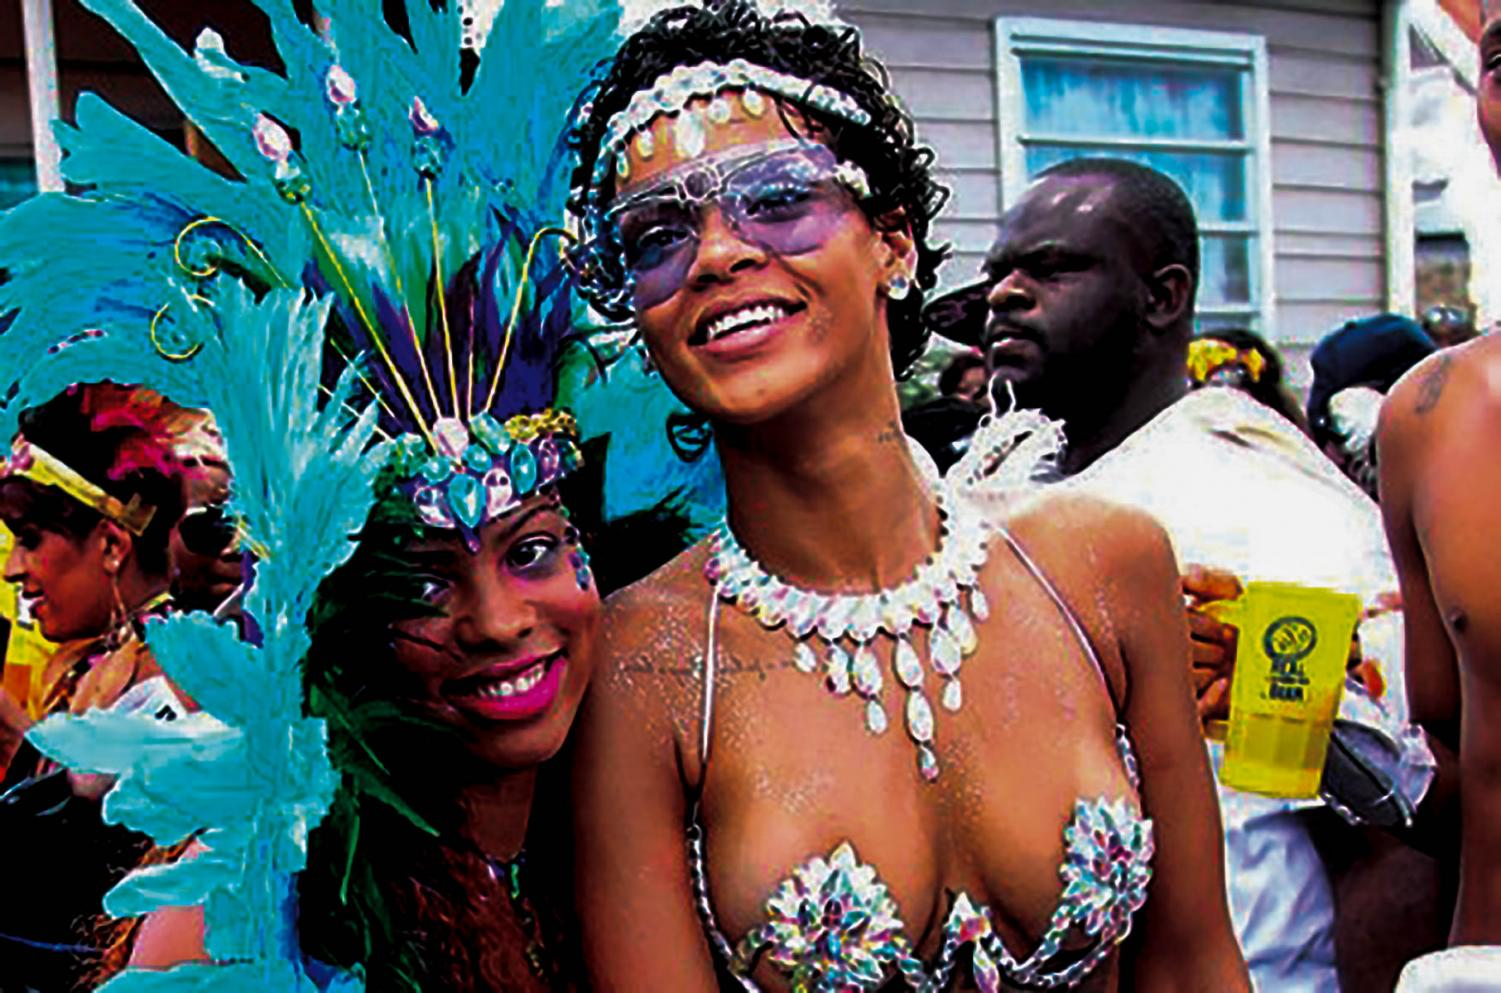 Rihanna has been known to attend the Crop Over Festival in Barbados.